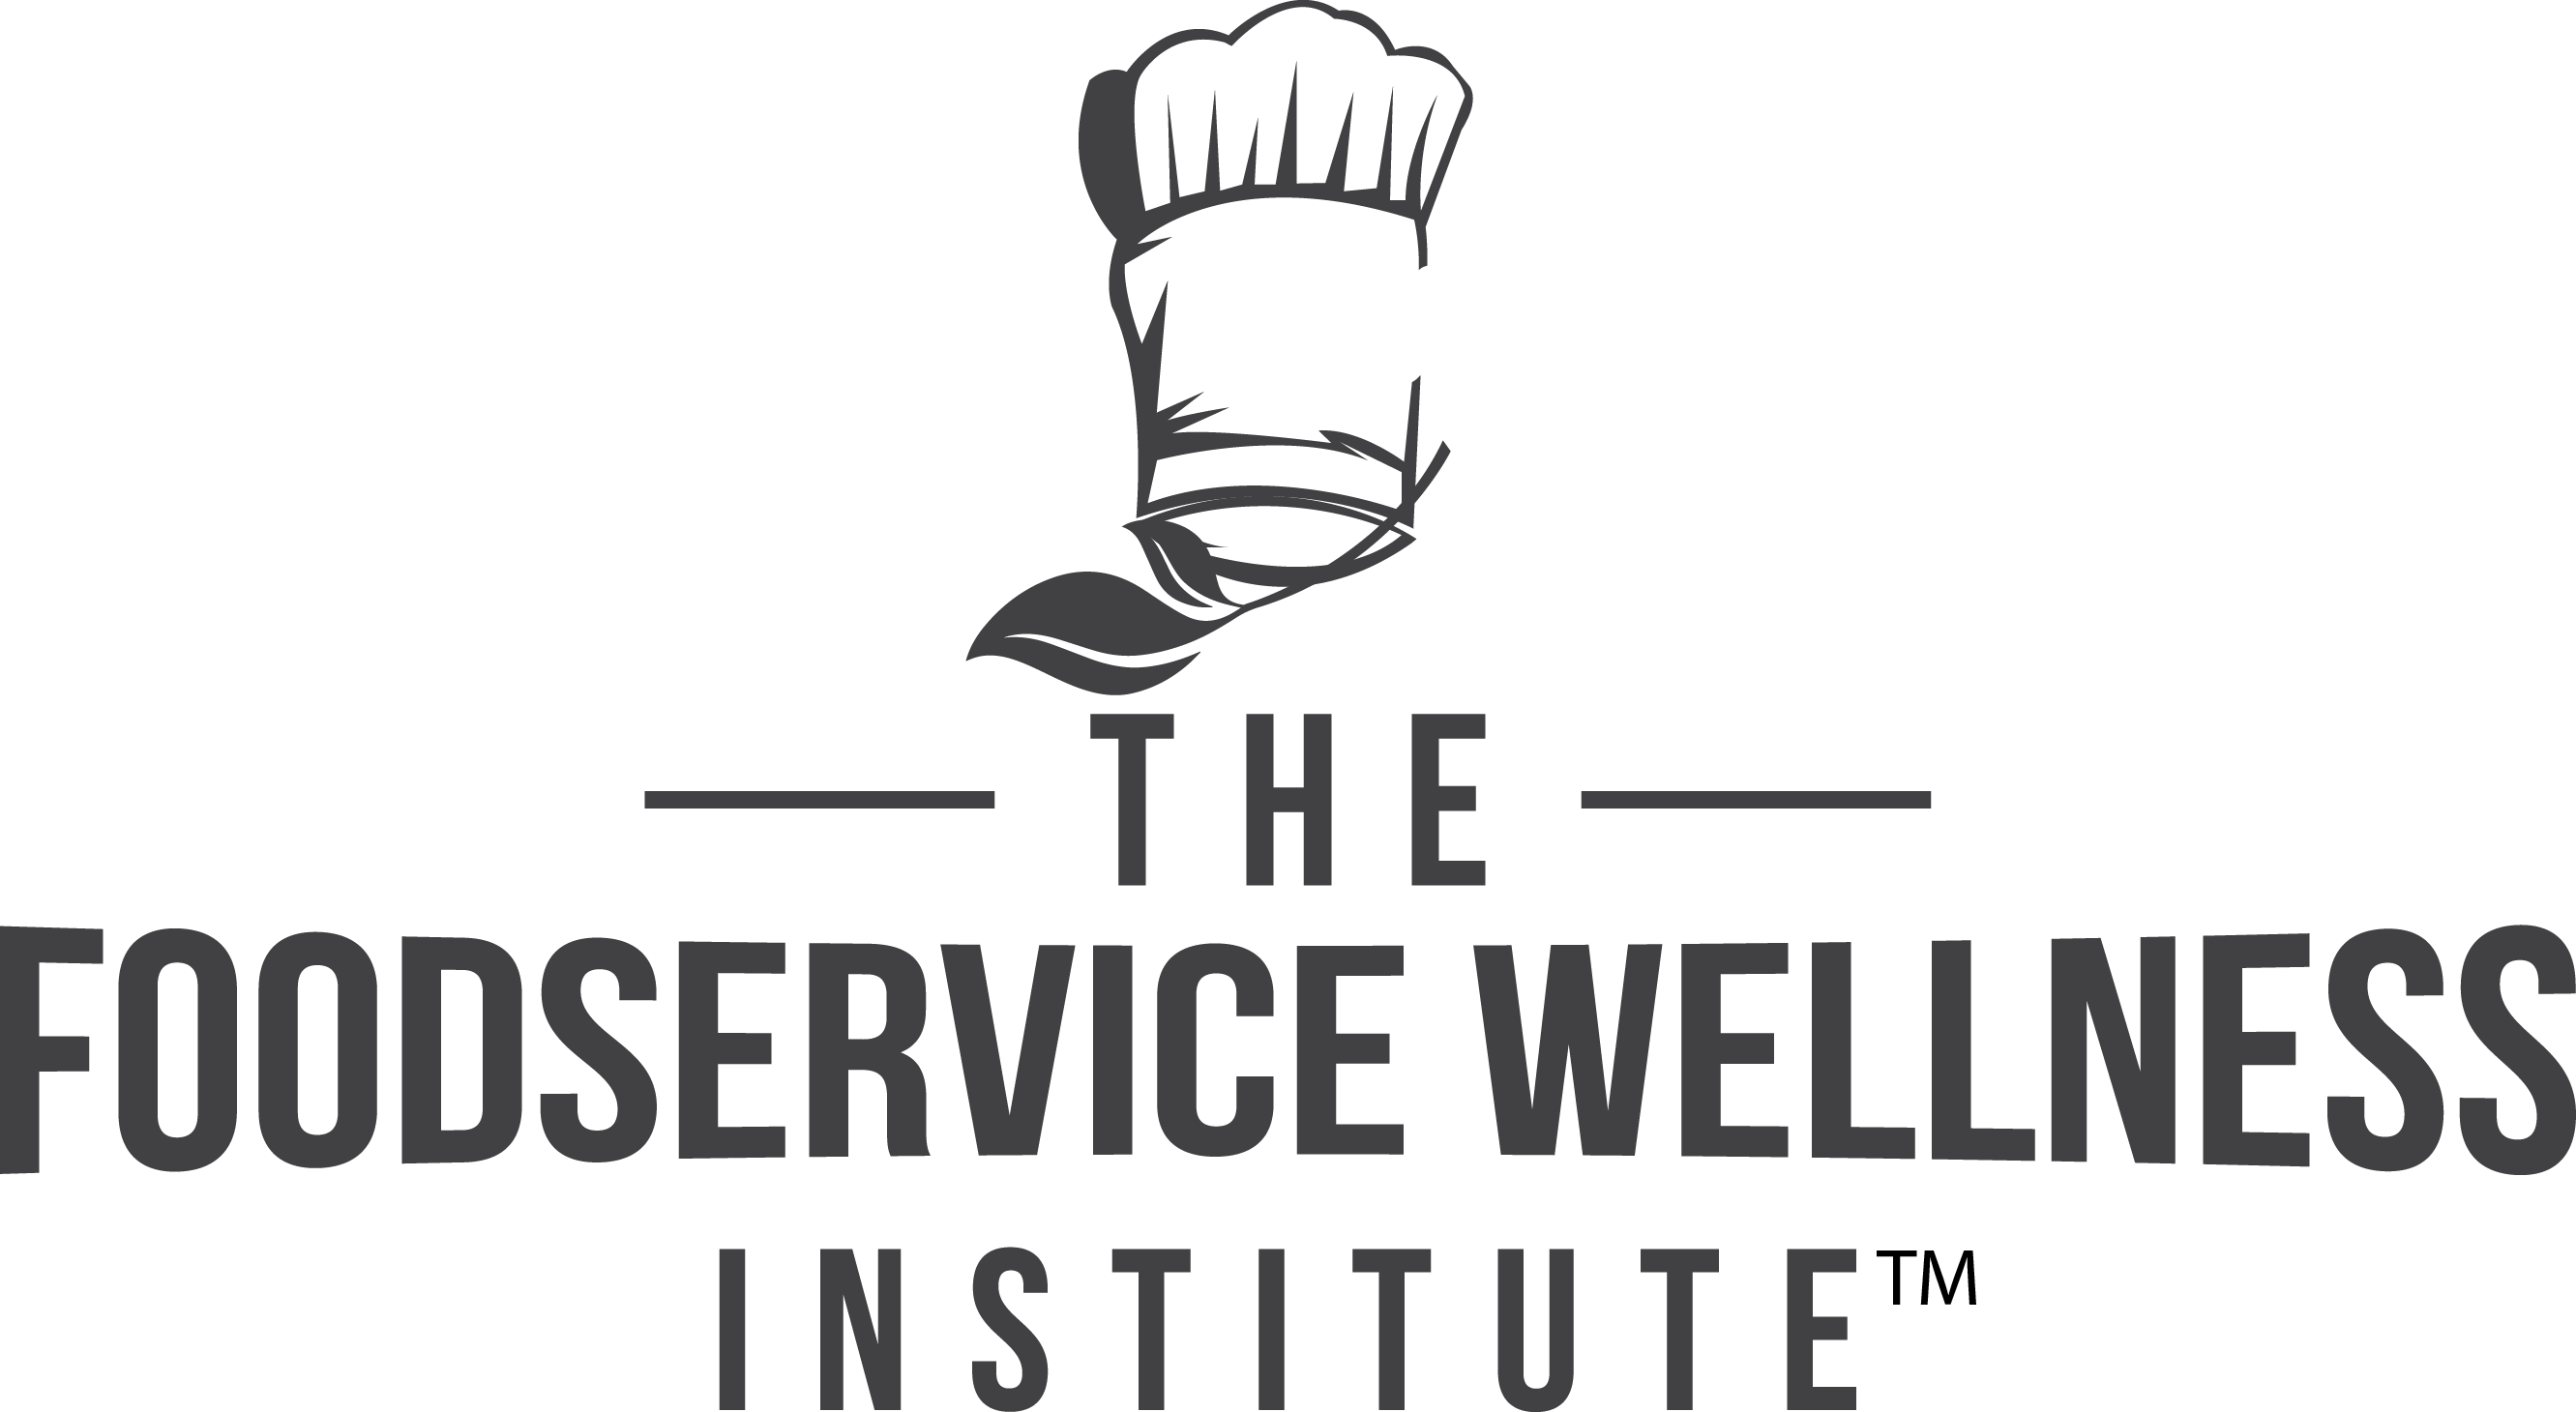 Food Service Wellness Institute